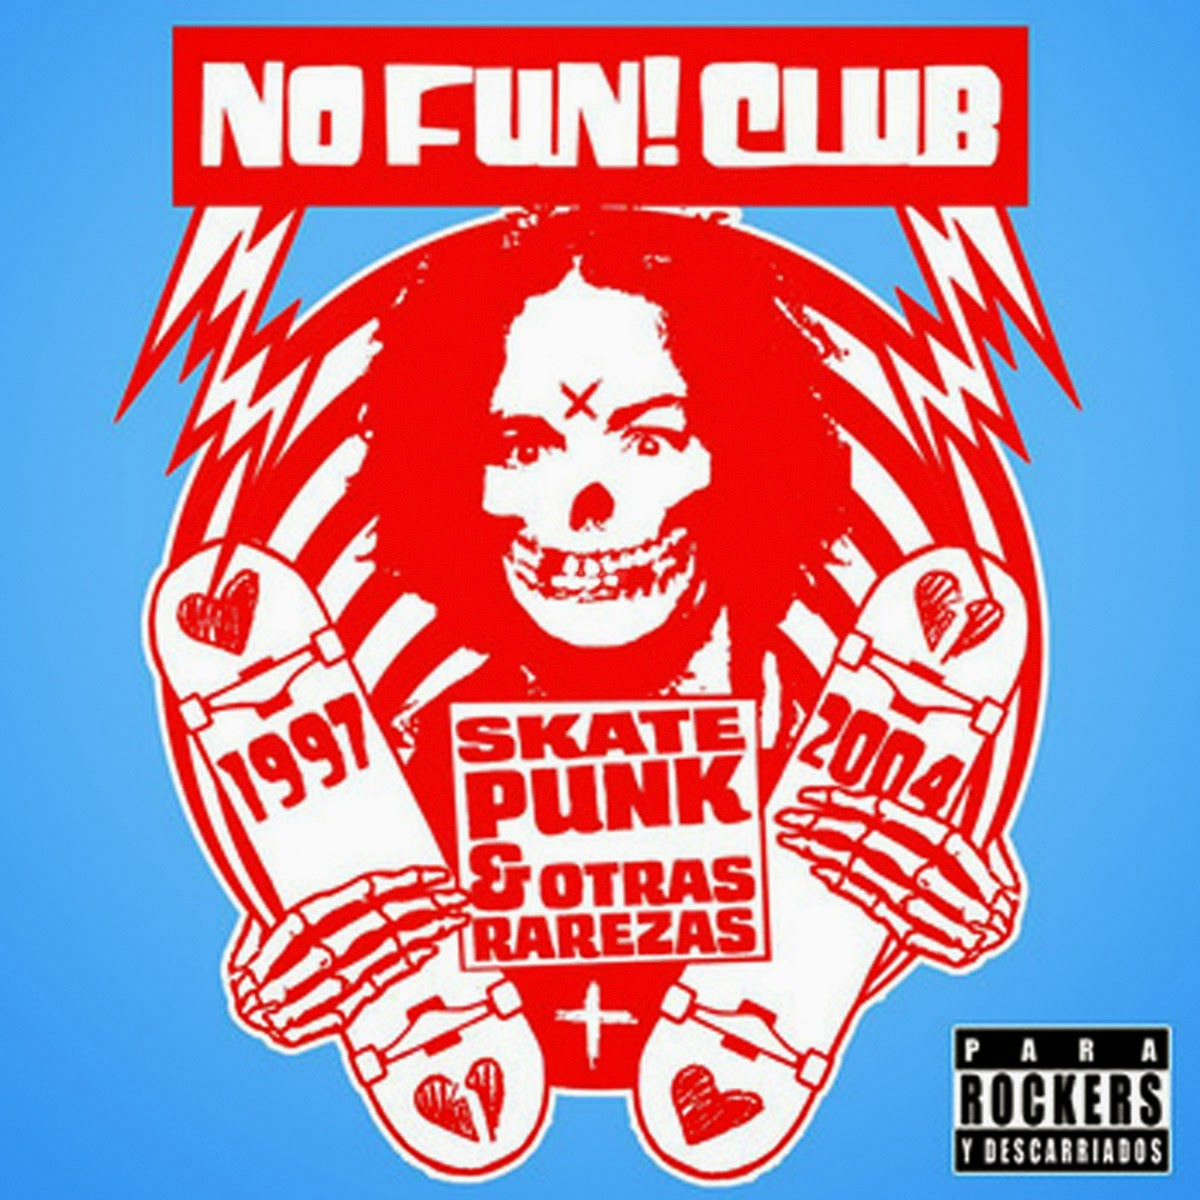 NO FUN! CLUB